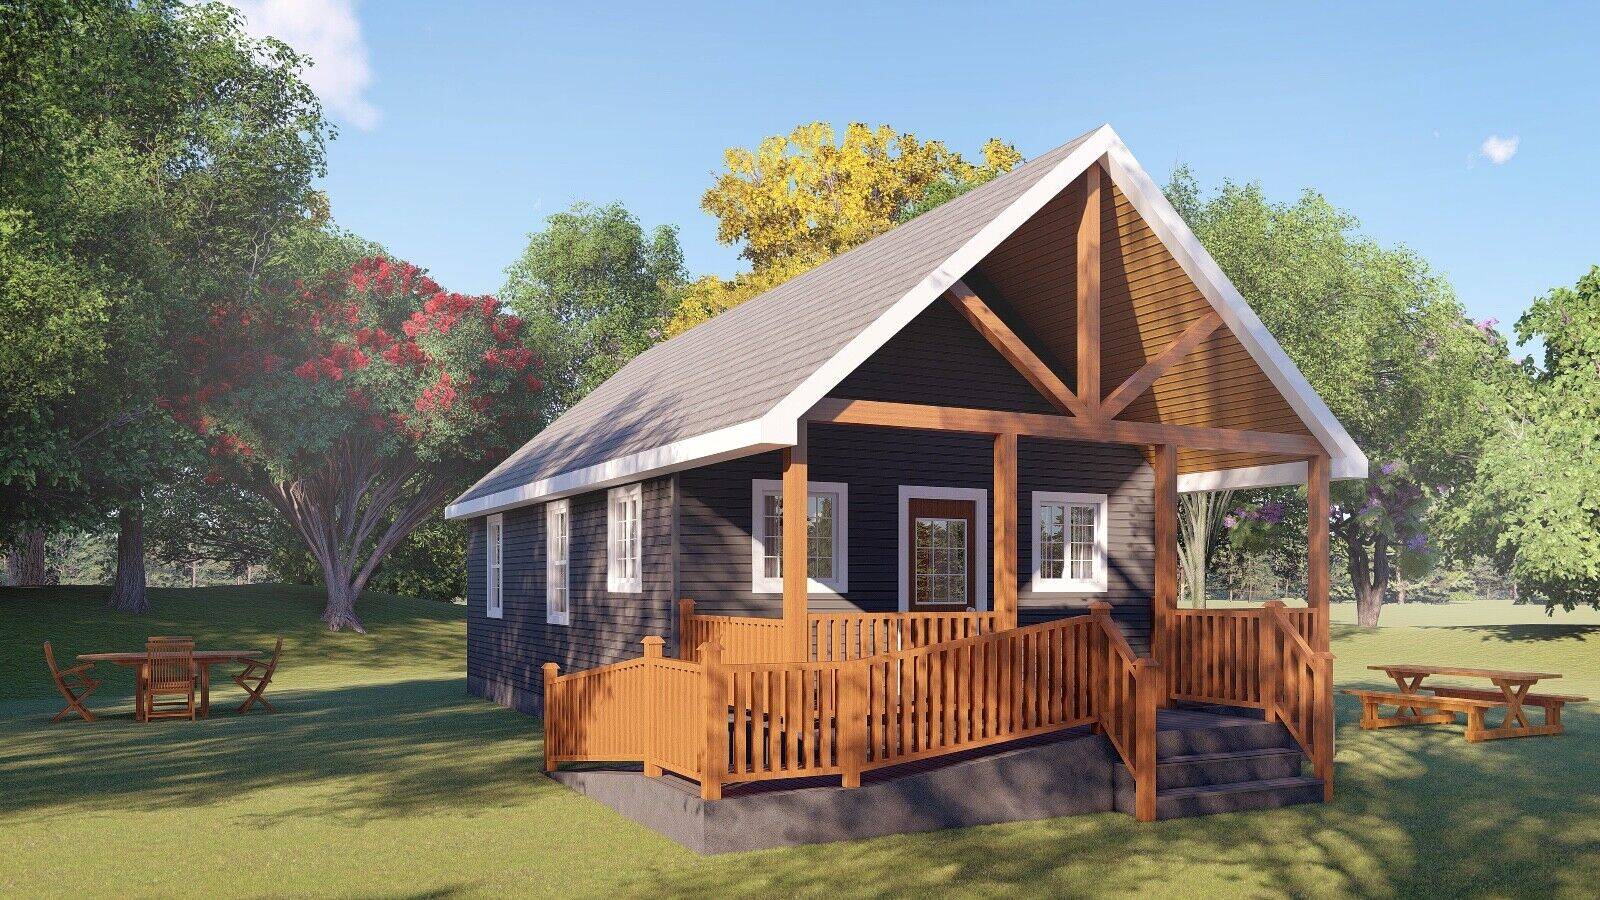 The Oasis Tiny House by Larry's Home Designs